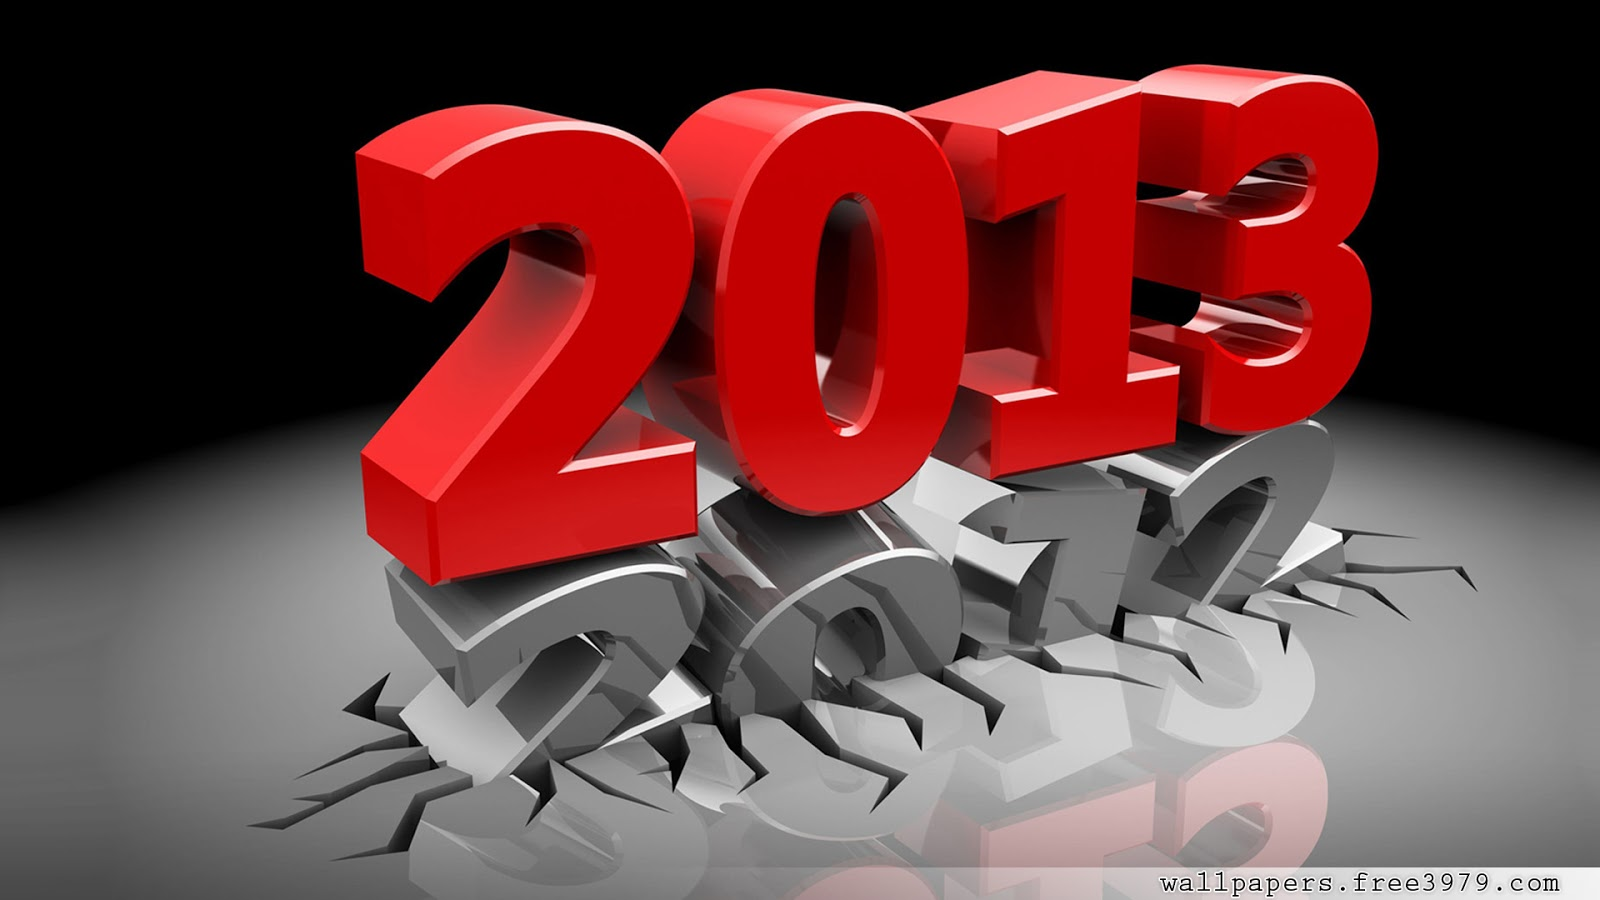 New Year wallpapers 2013 3d